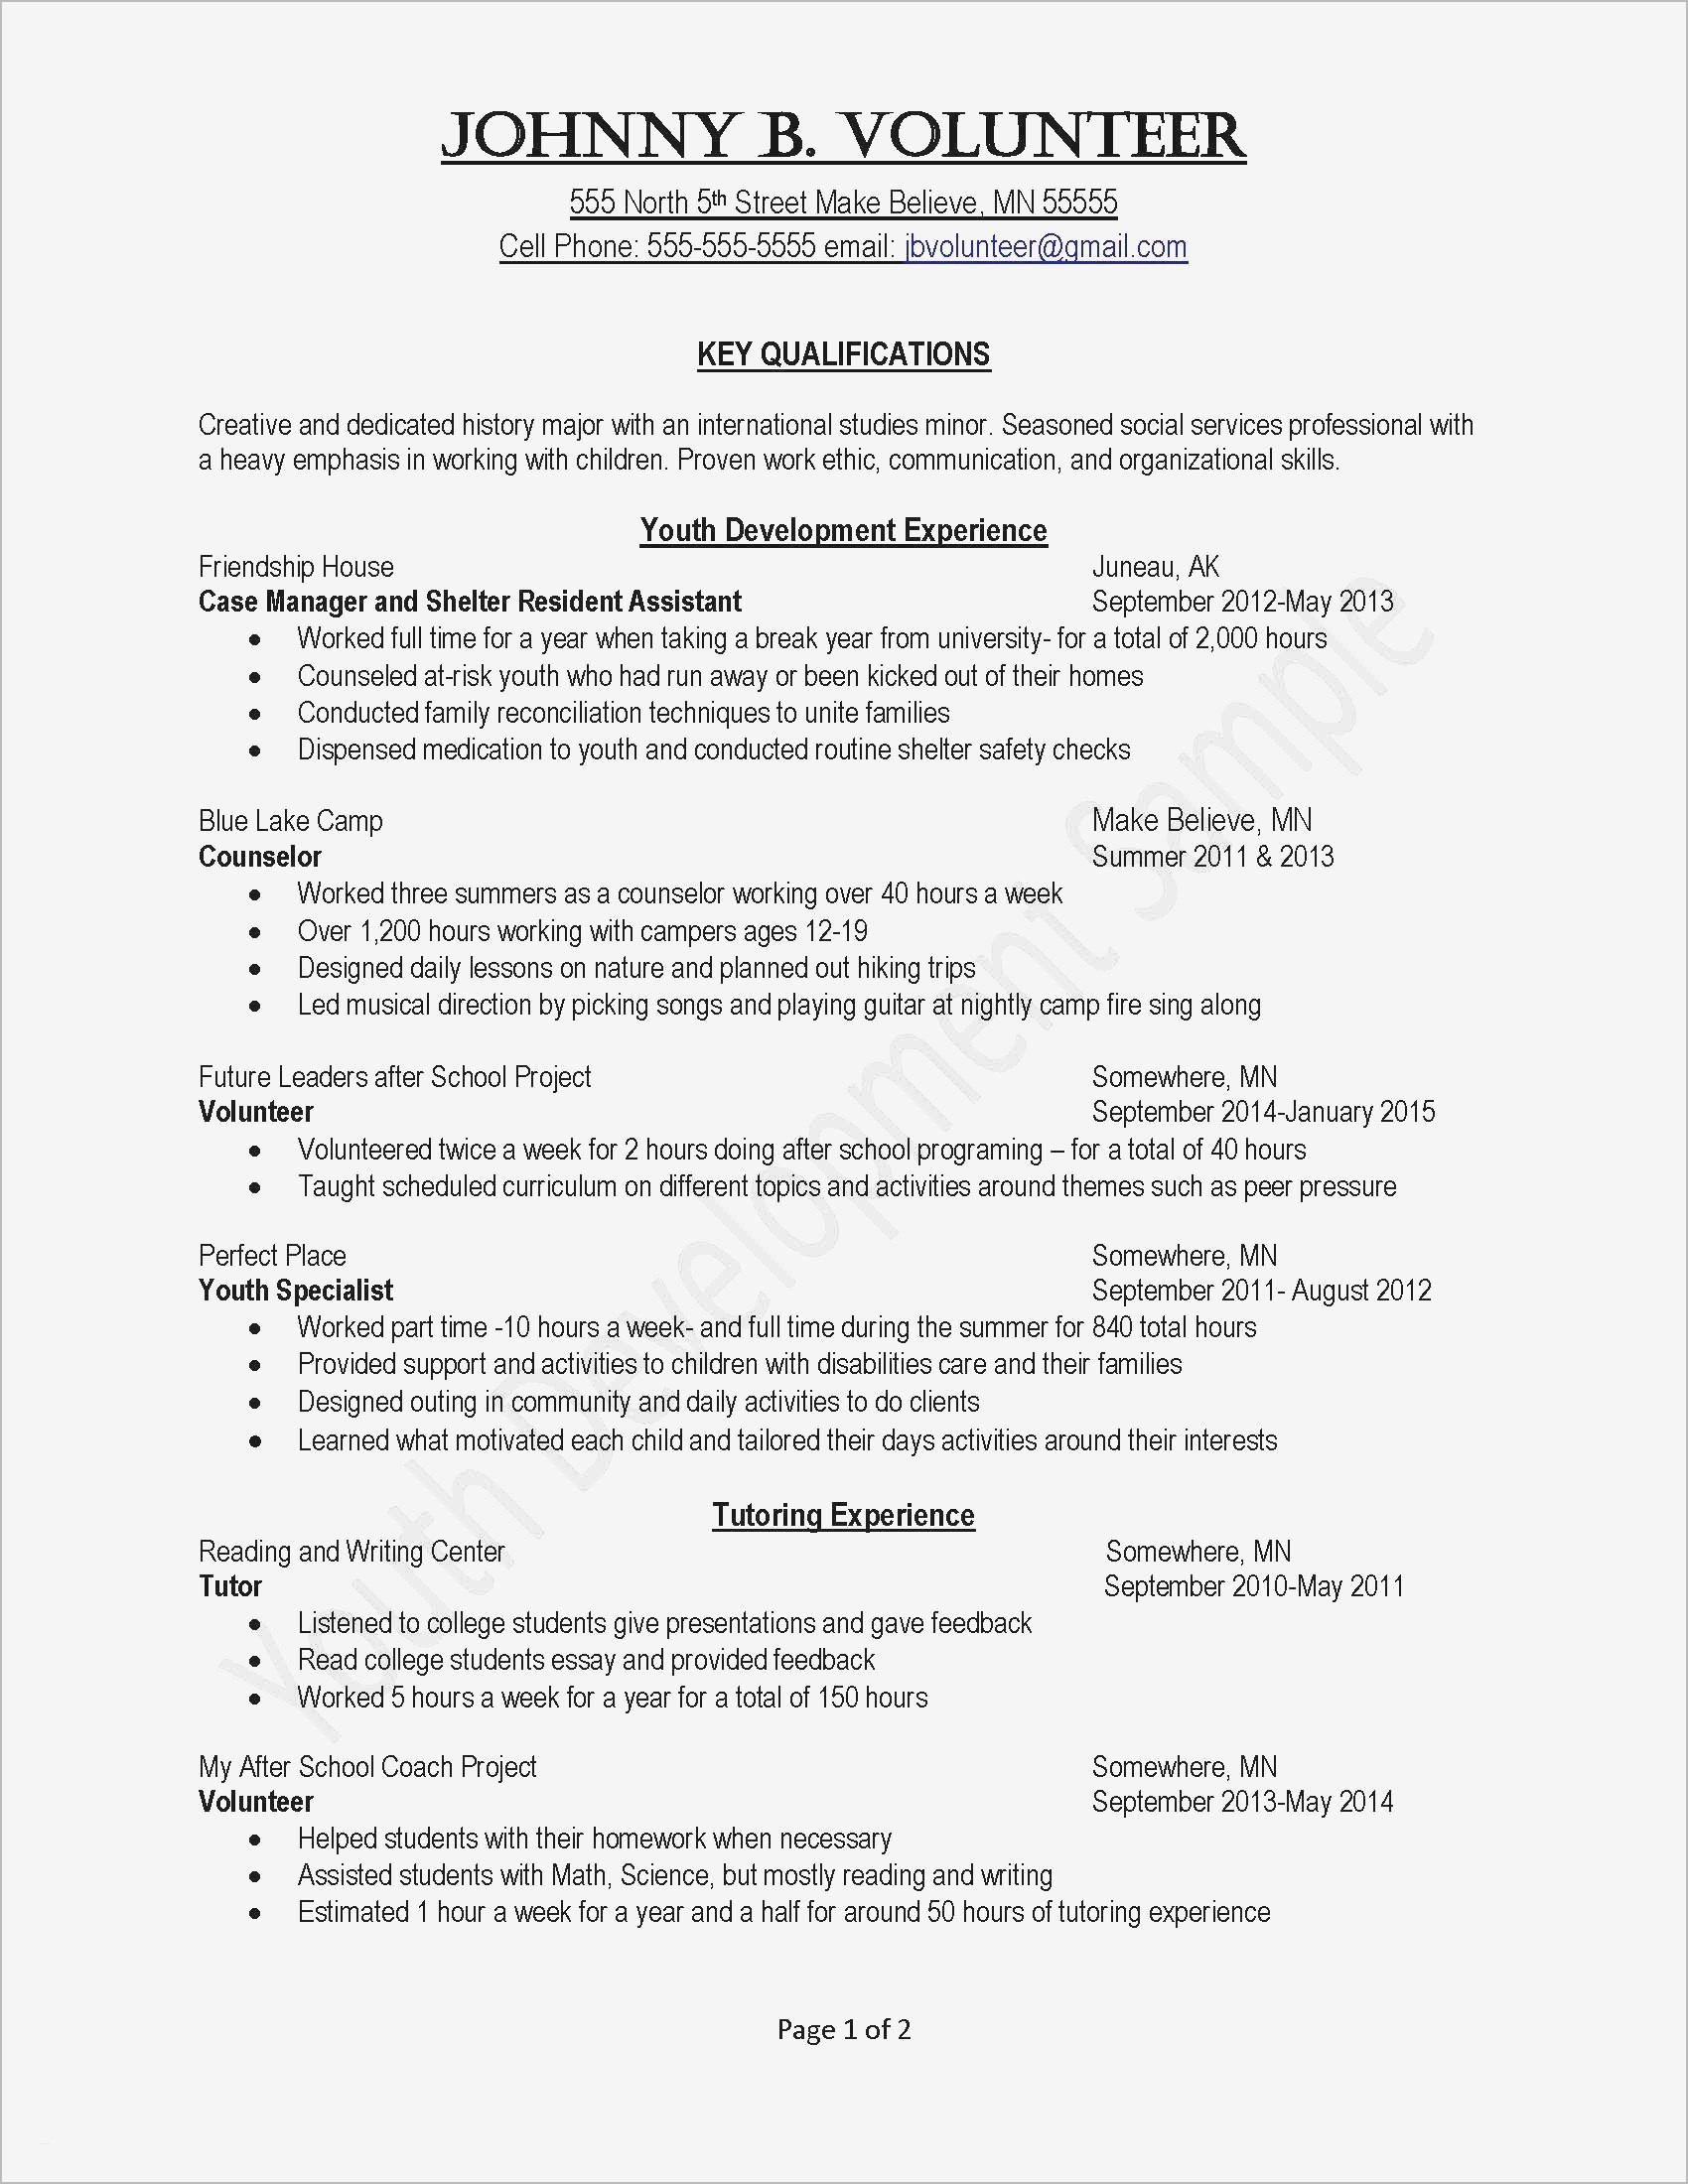 Due Diligence Letter Template - Skills Resume Templates Beautiful Job Fer Letter Template Us Copy Od